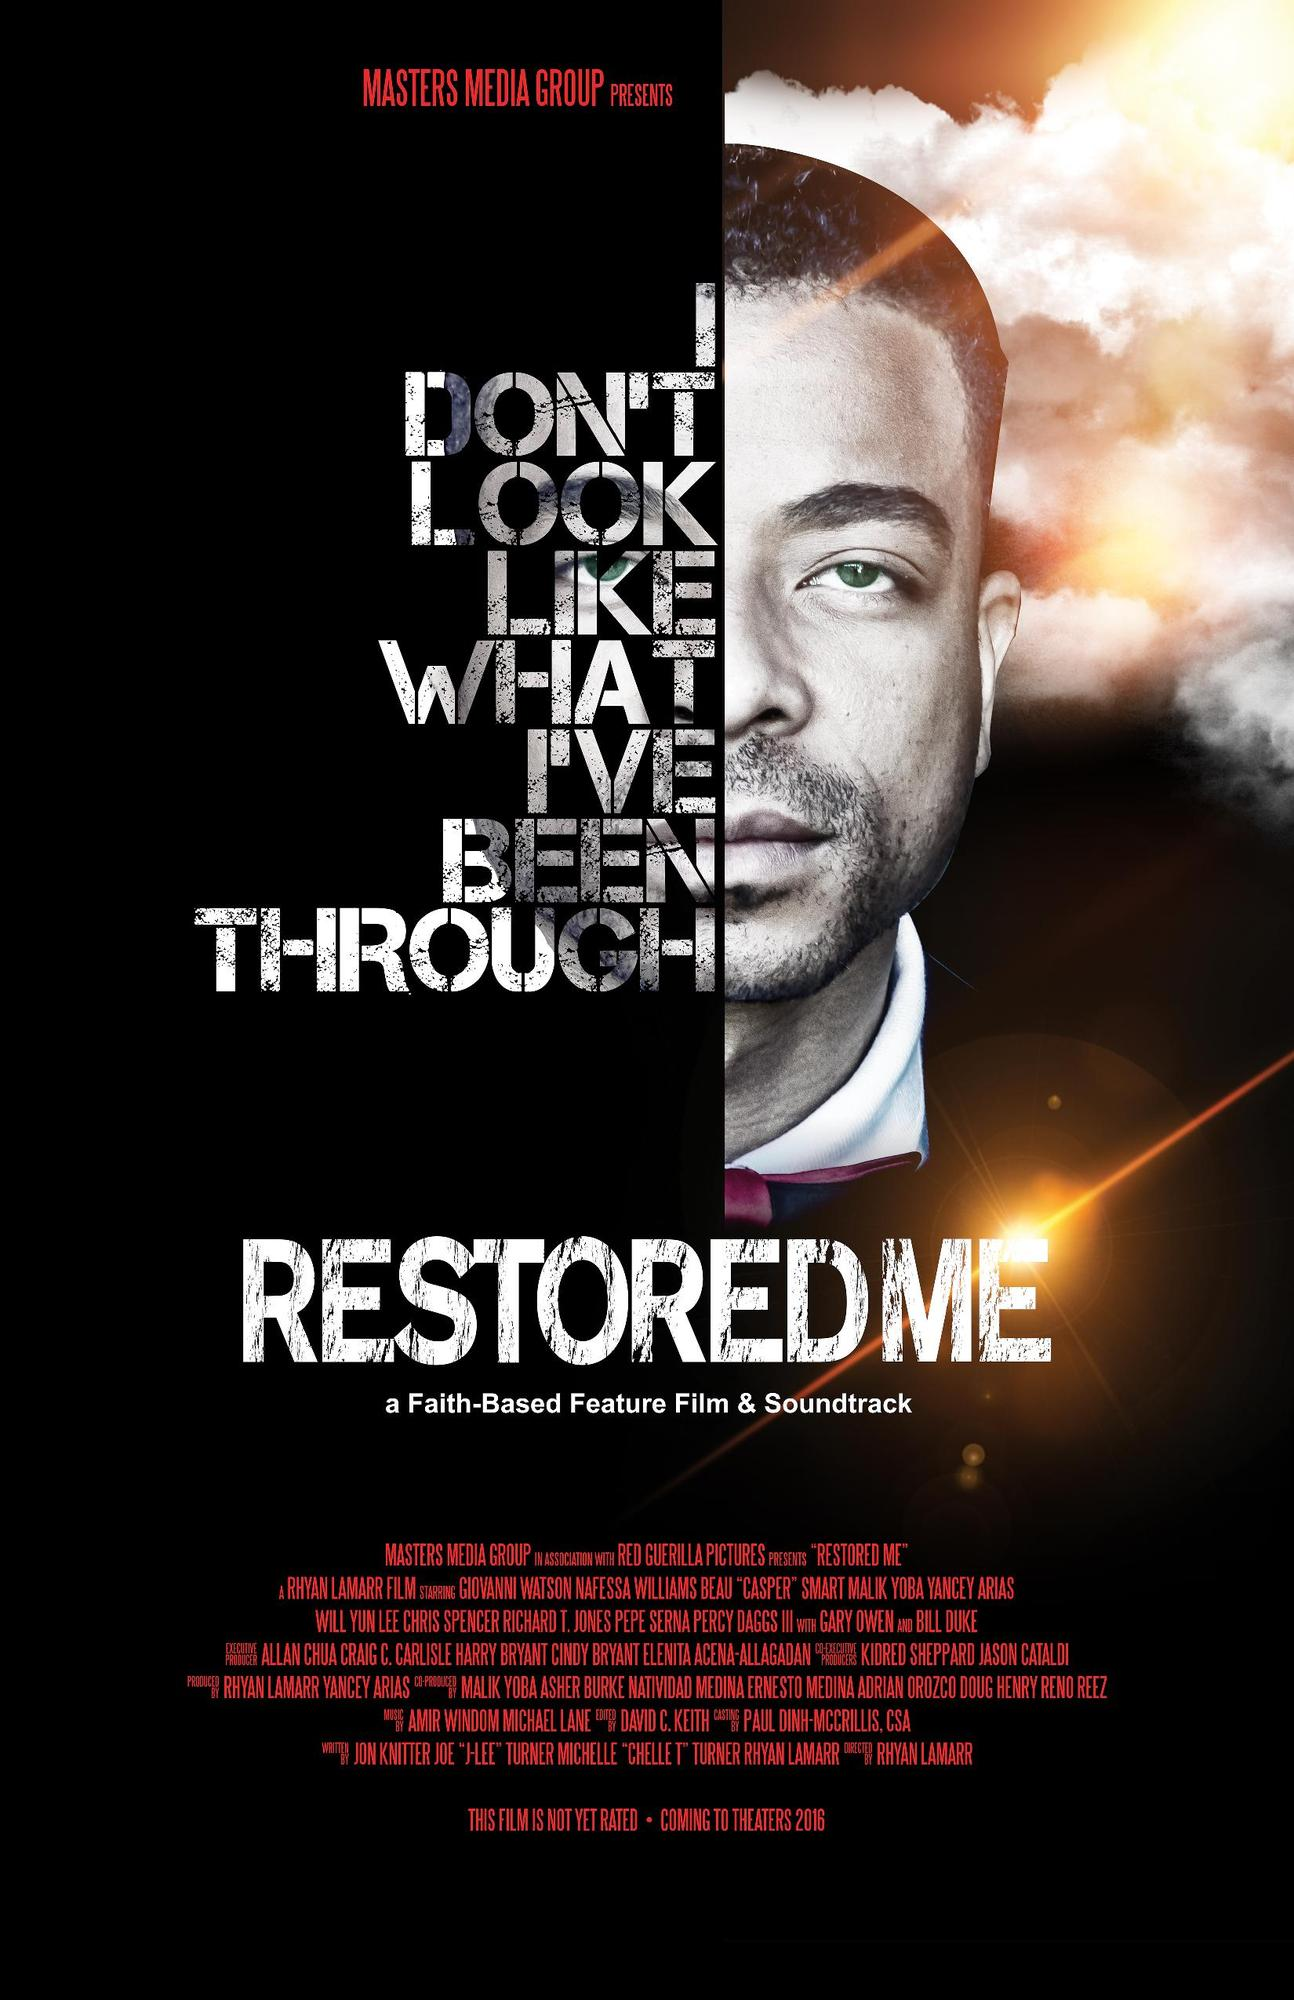 Restored Me (Film - 2016)    Credited: Director of Photography   Starring: Casper Smart, Giovanni Watson  A troubled ex-con joins the colorful crew of an old movie theater and begins to rebuild his life, only to find his faith in God tested when he learns the theater he has grown to love is not what it seems.